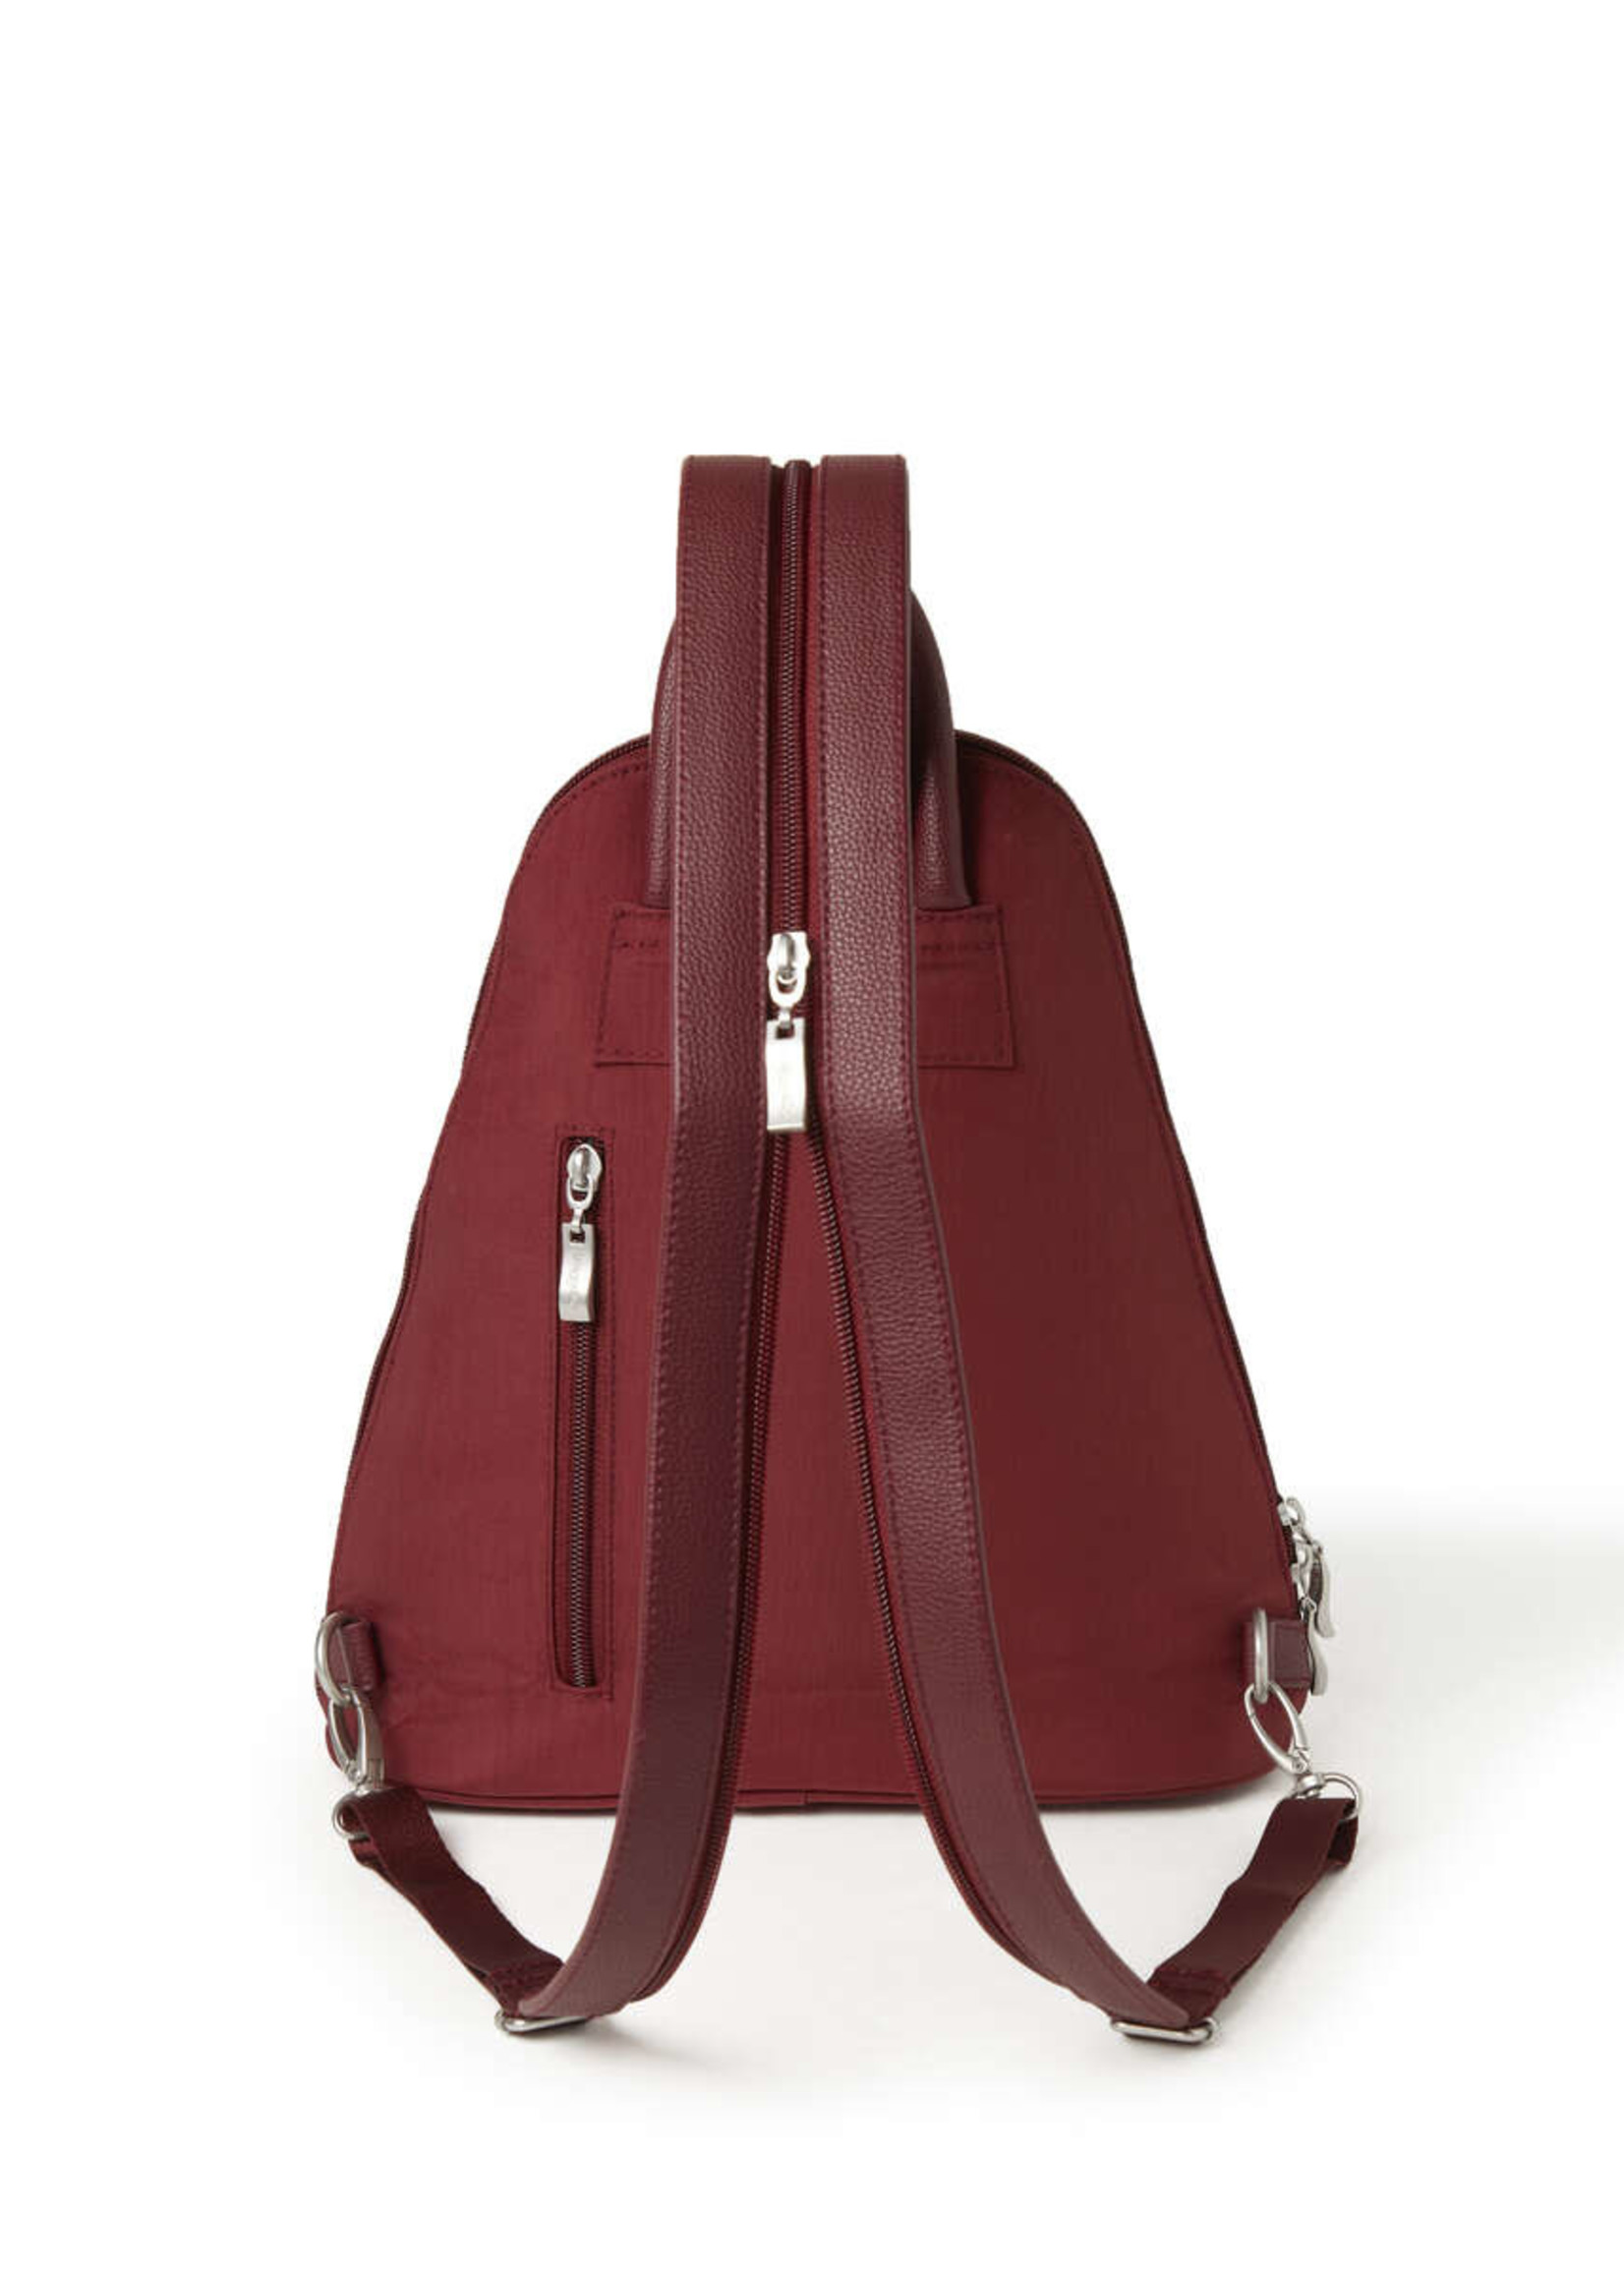 Baggallini Metro Backpack with RFID Wristlet - Russet Red